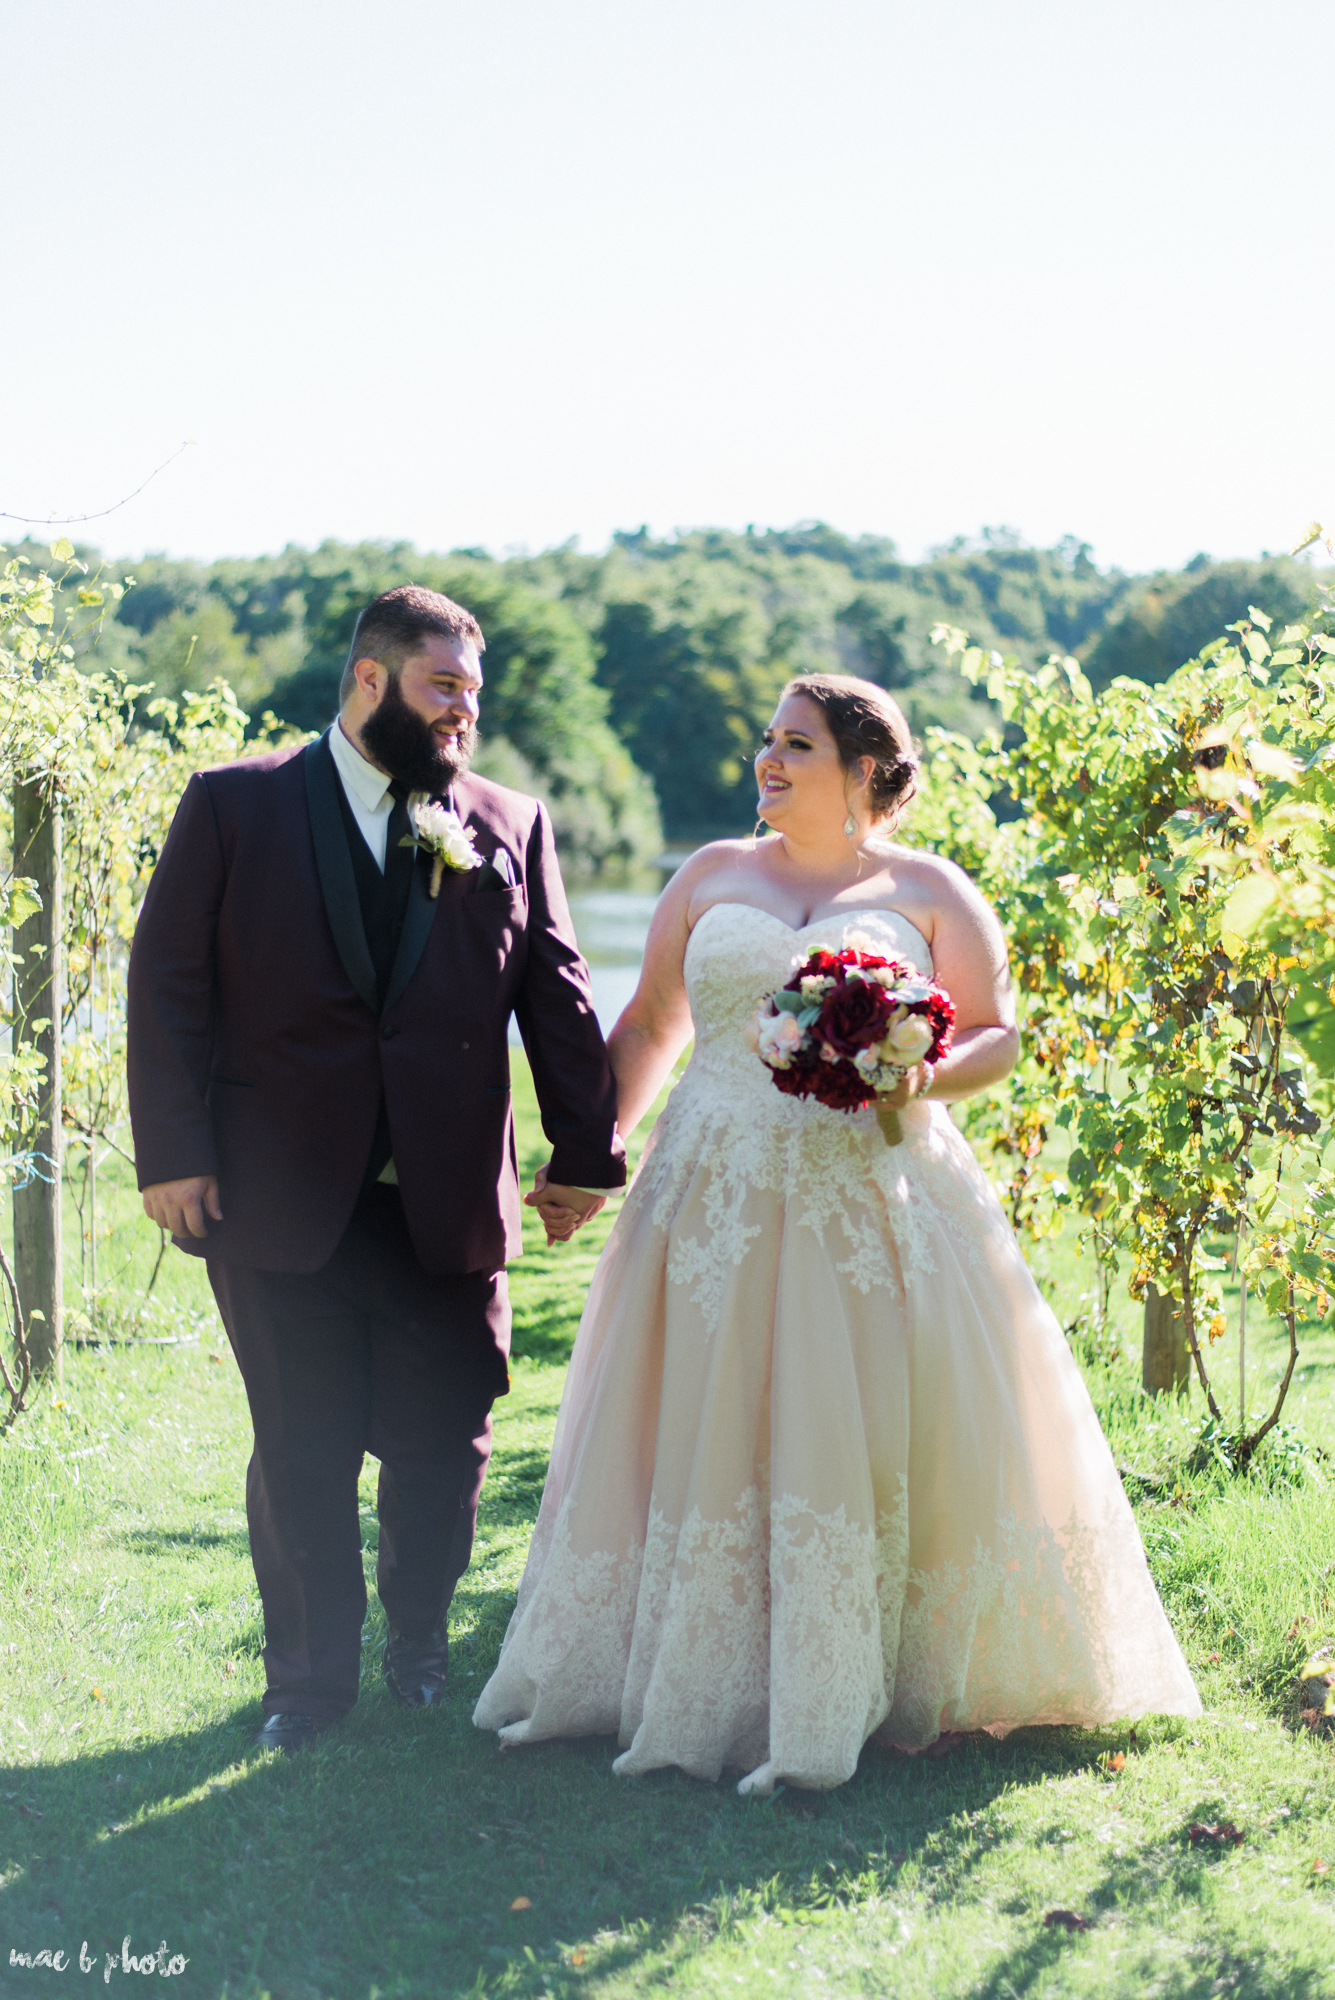 Amber & Kyle's Rustic Barn Wedding at SNPJ in Enon Valley, PA by Mae B Photo-70.jpg